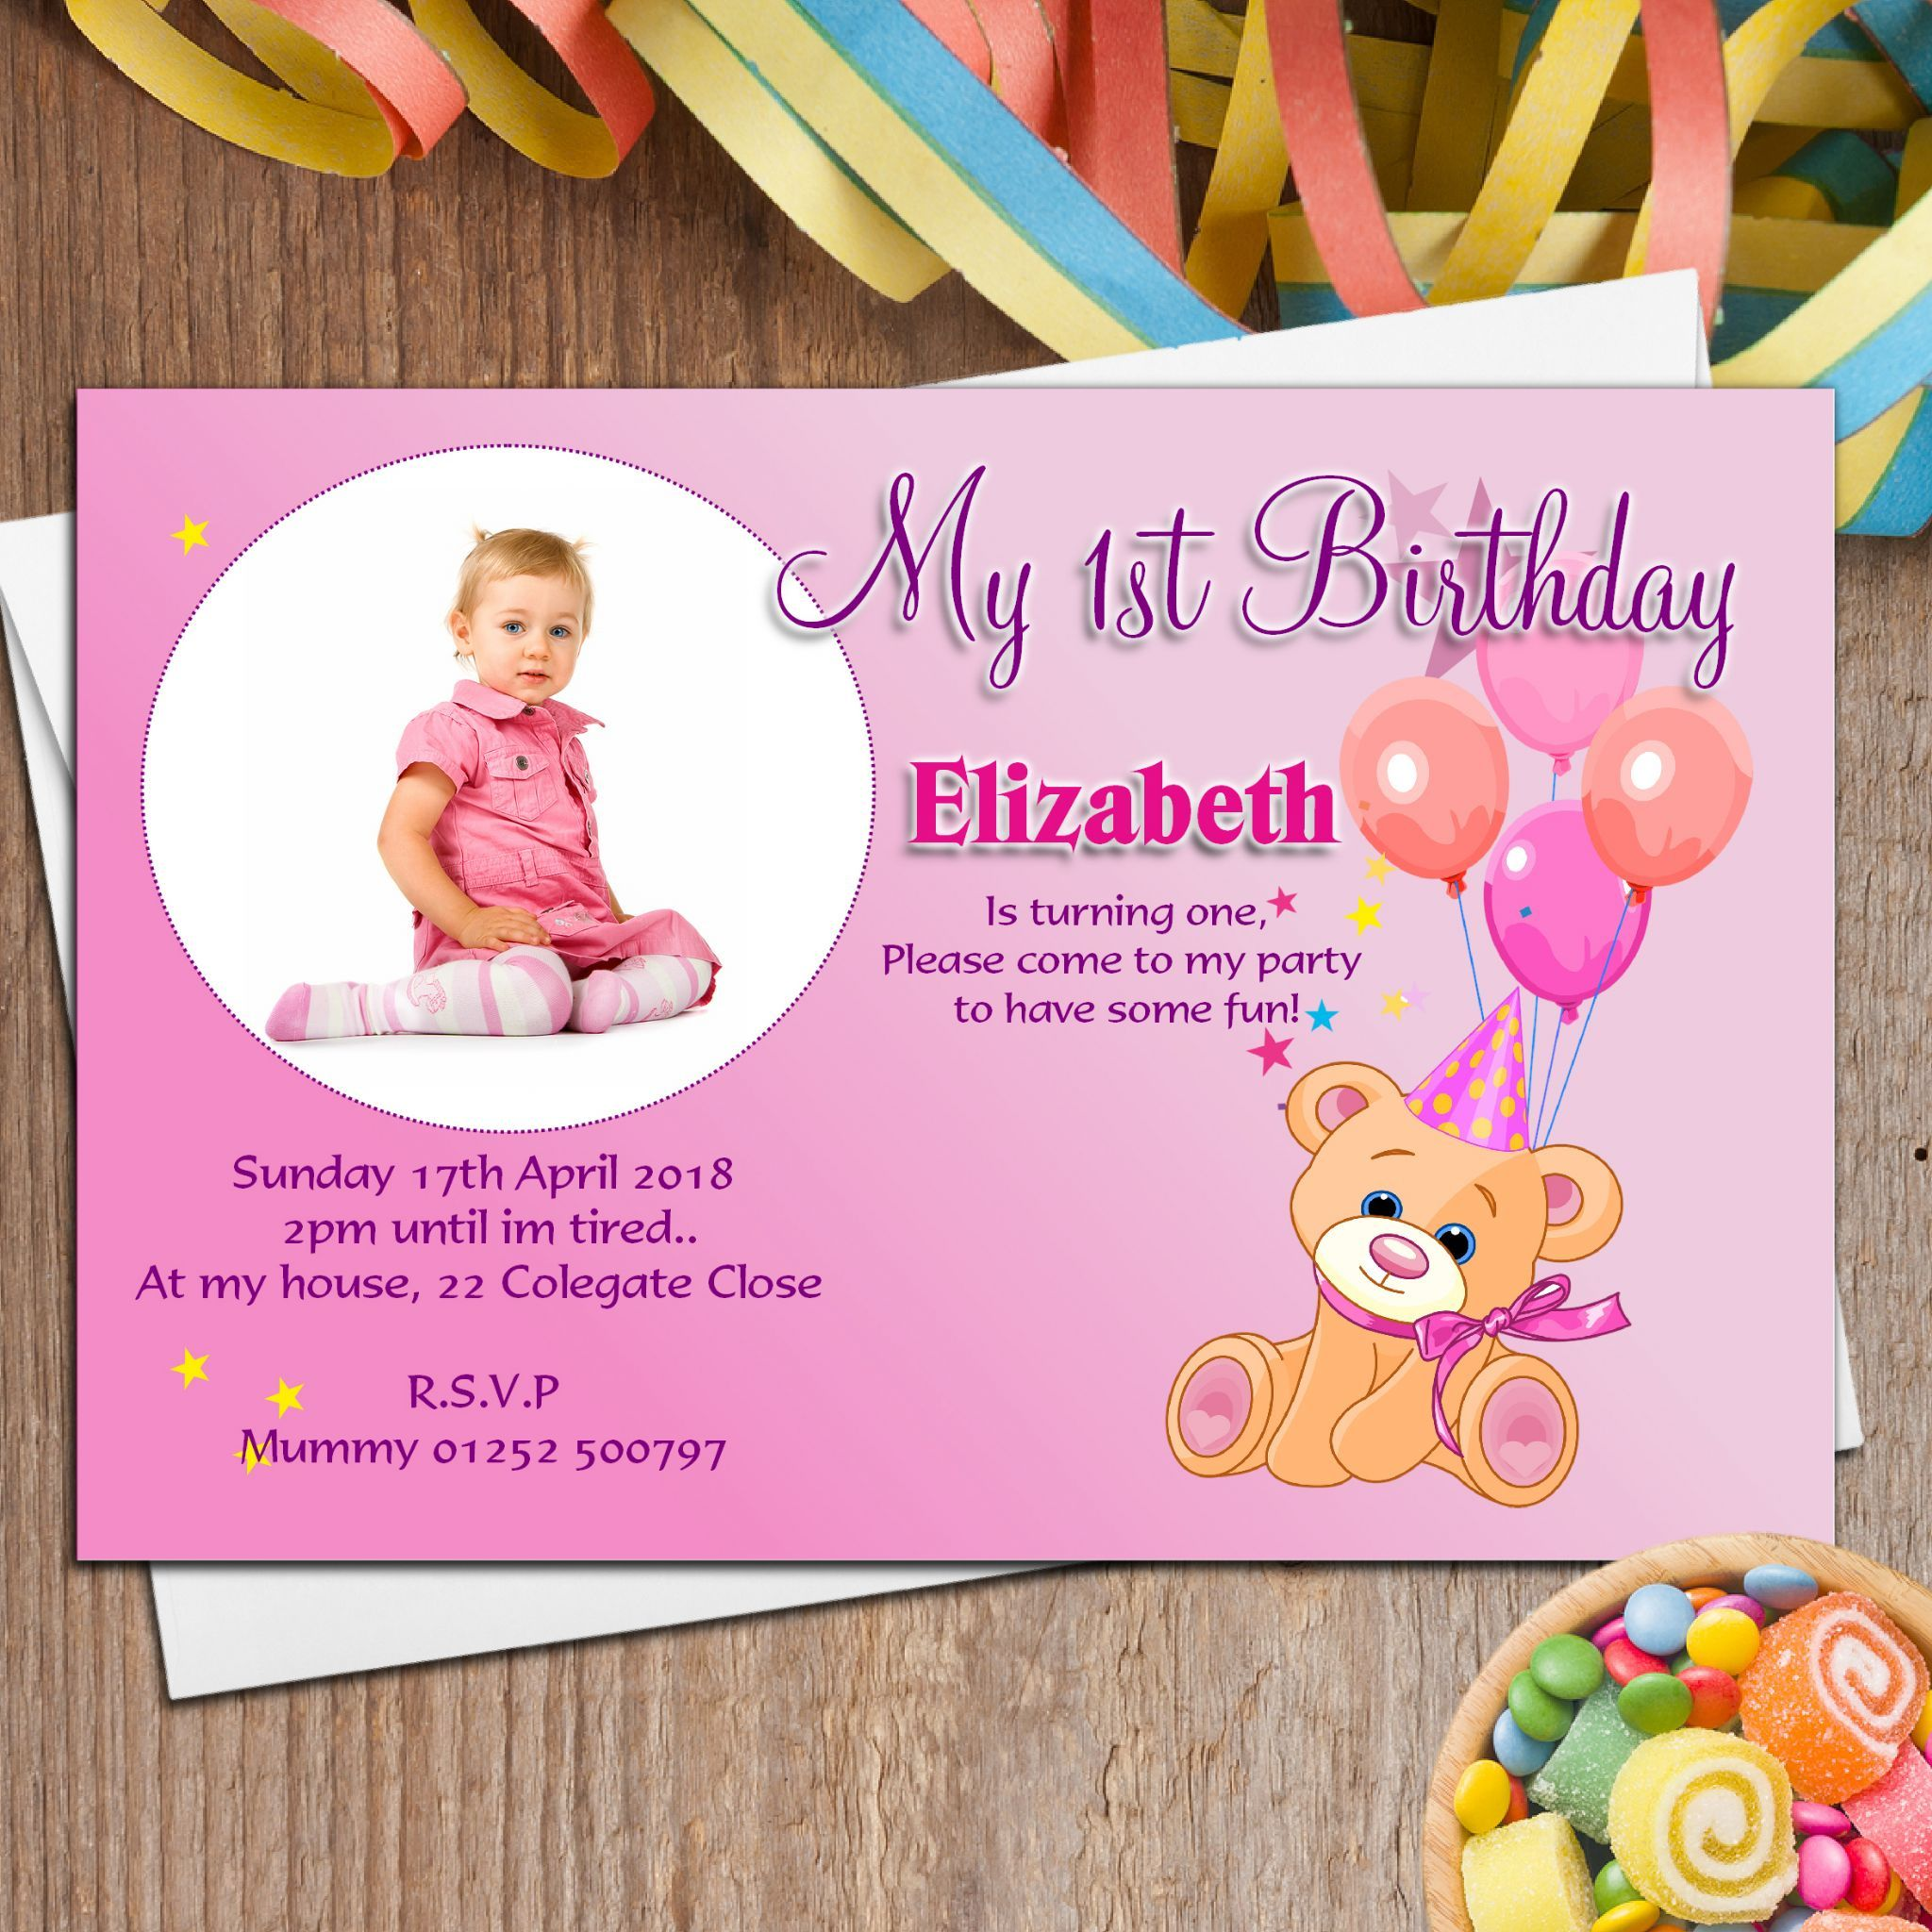 baby 1st birthday greeting cards ; e85f72c5f111740177bf30f2e2dee0a7